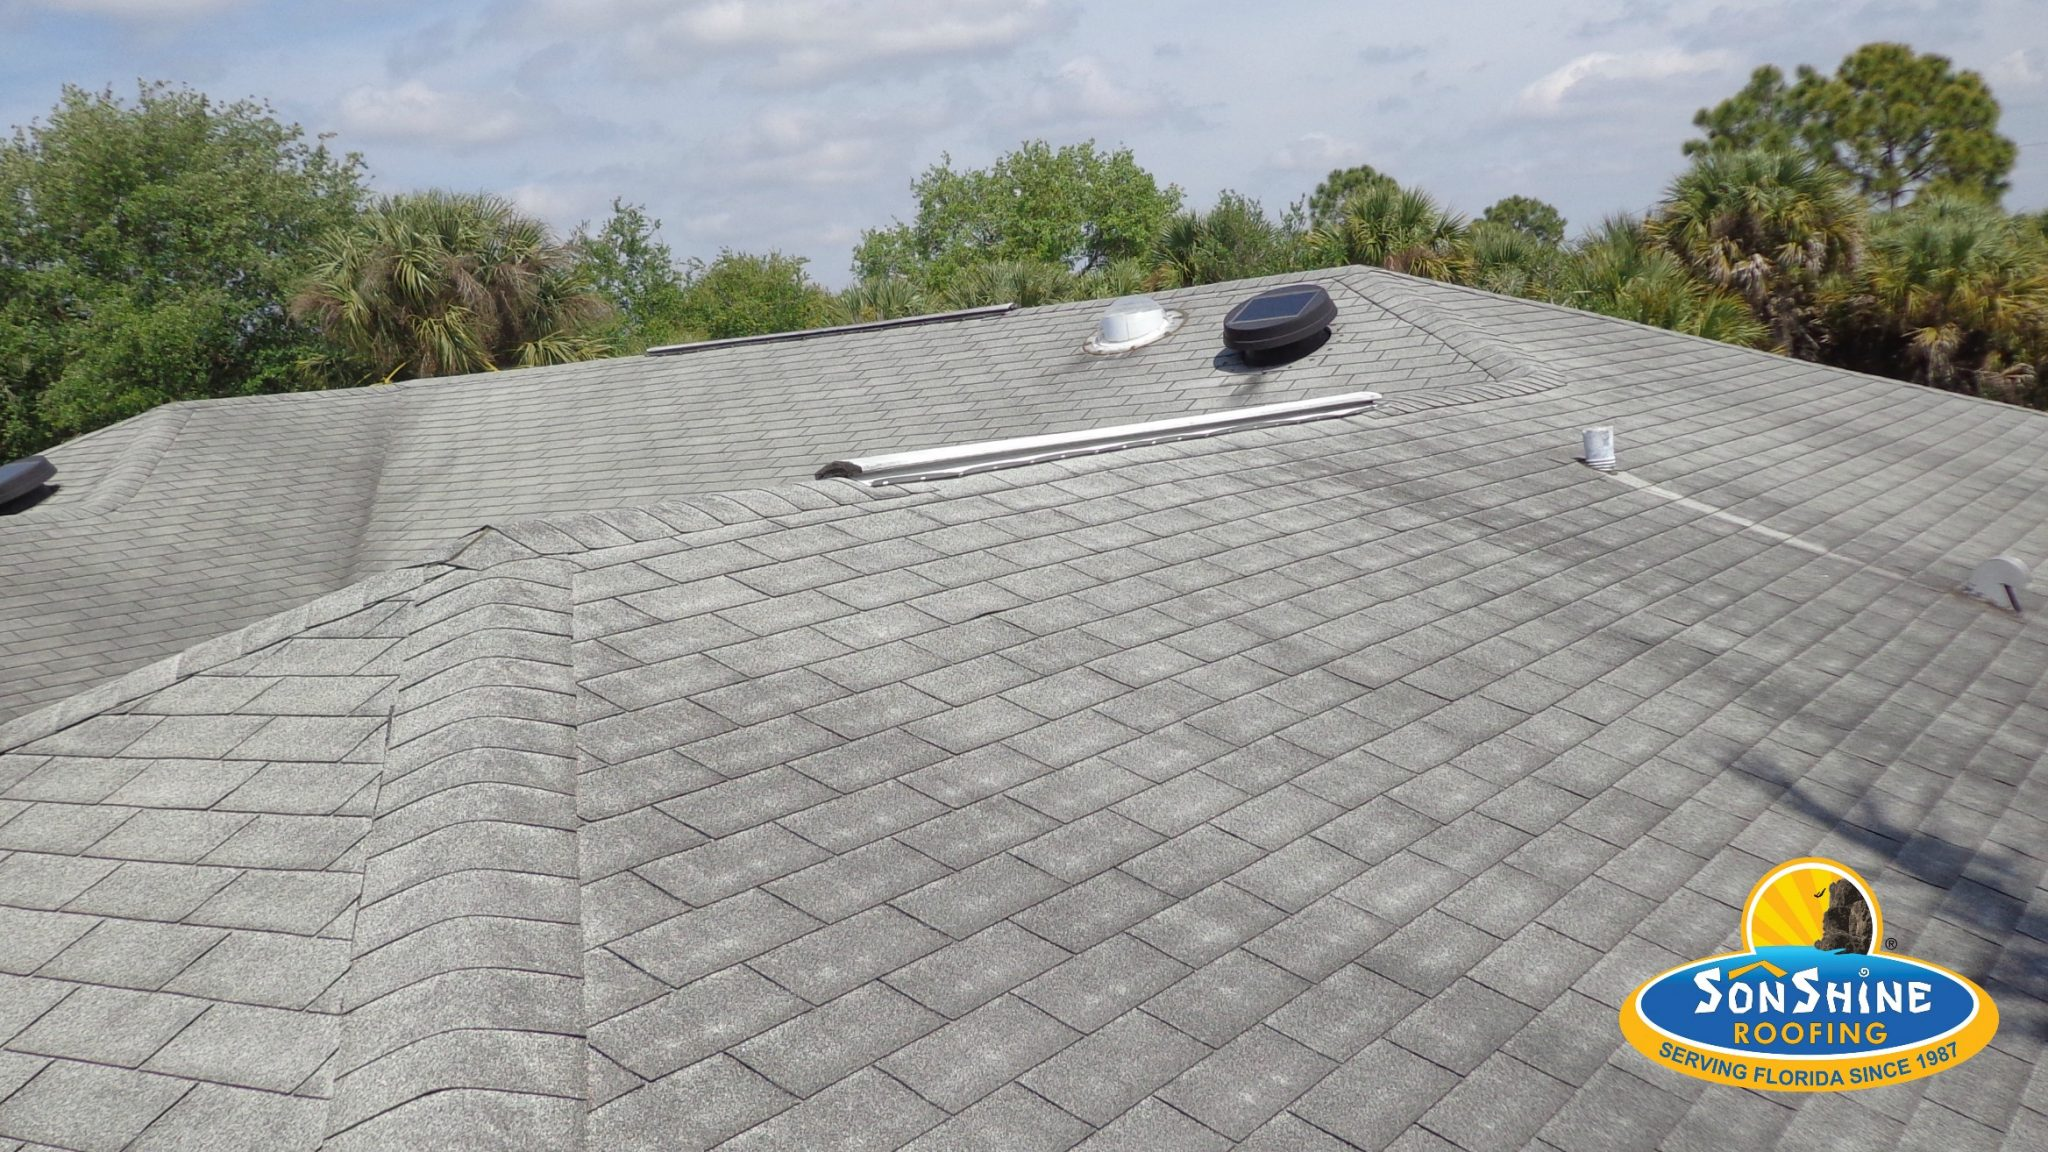 Top 5 tips to improve the life of your   roof